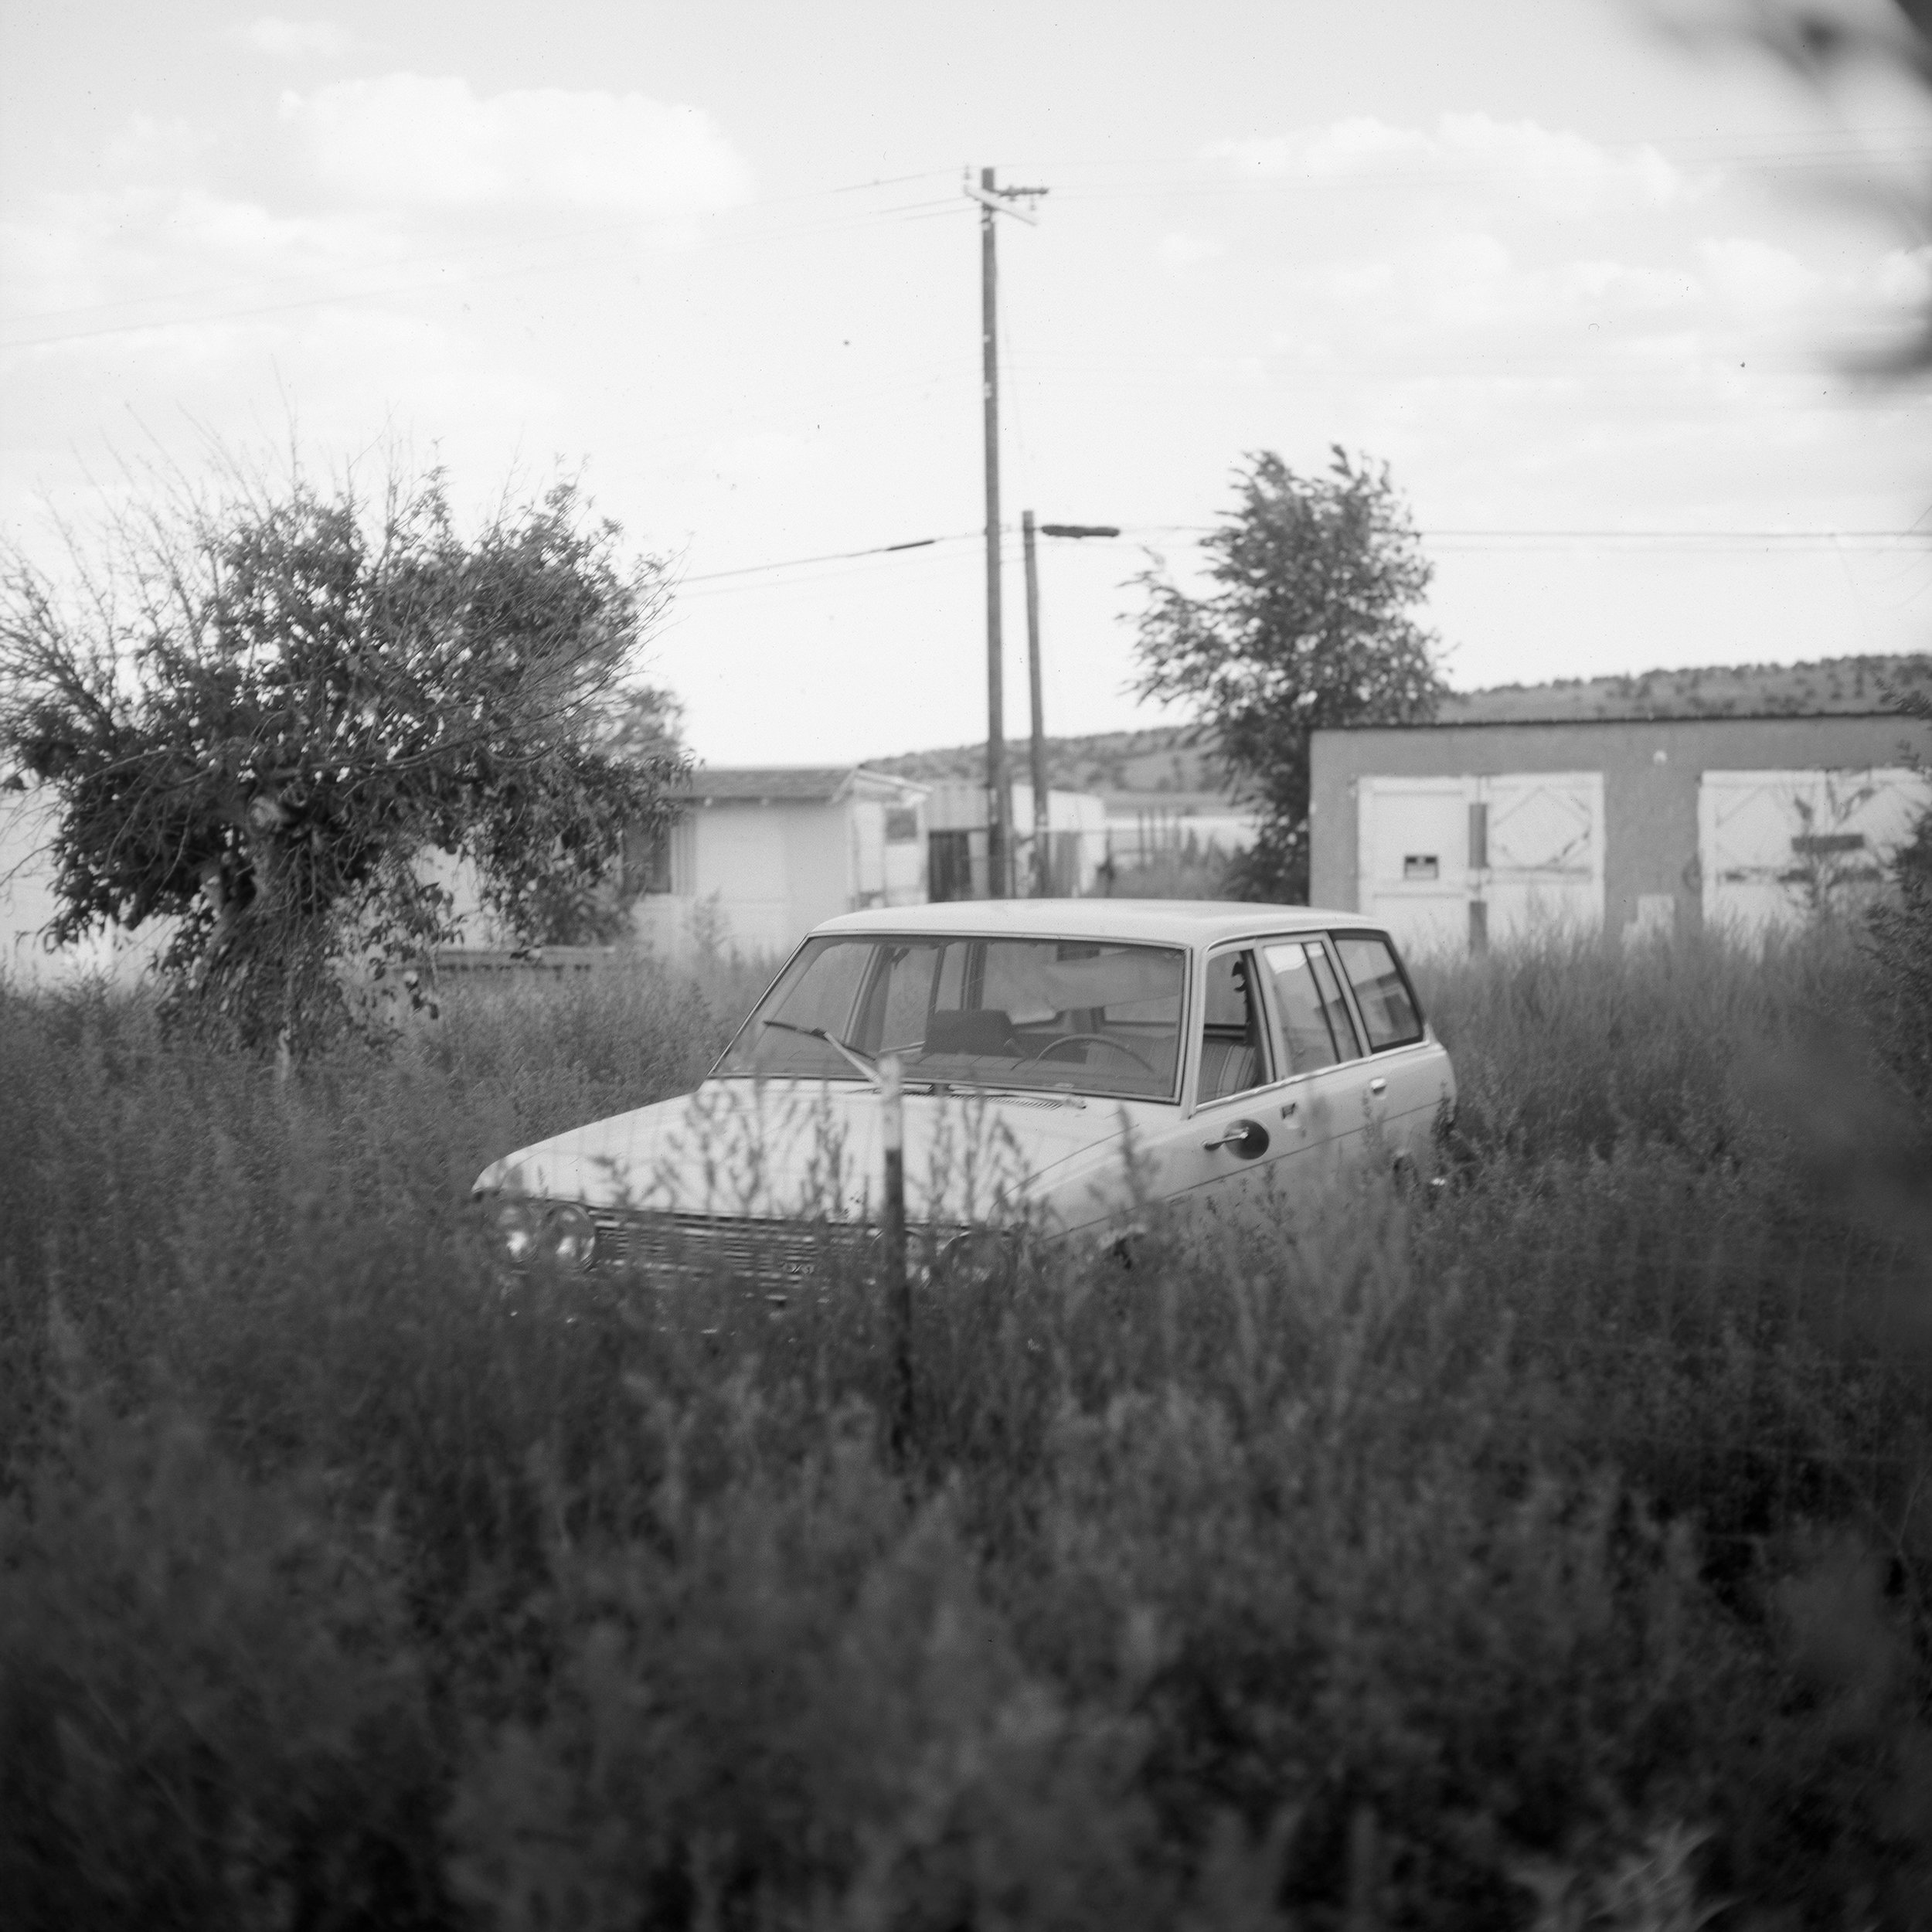 The old Datsun, Seligman, AZ, 2017 - 120 Delta 100 (6x6)